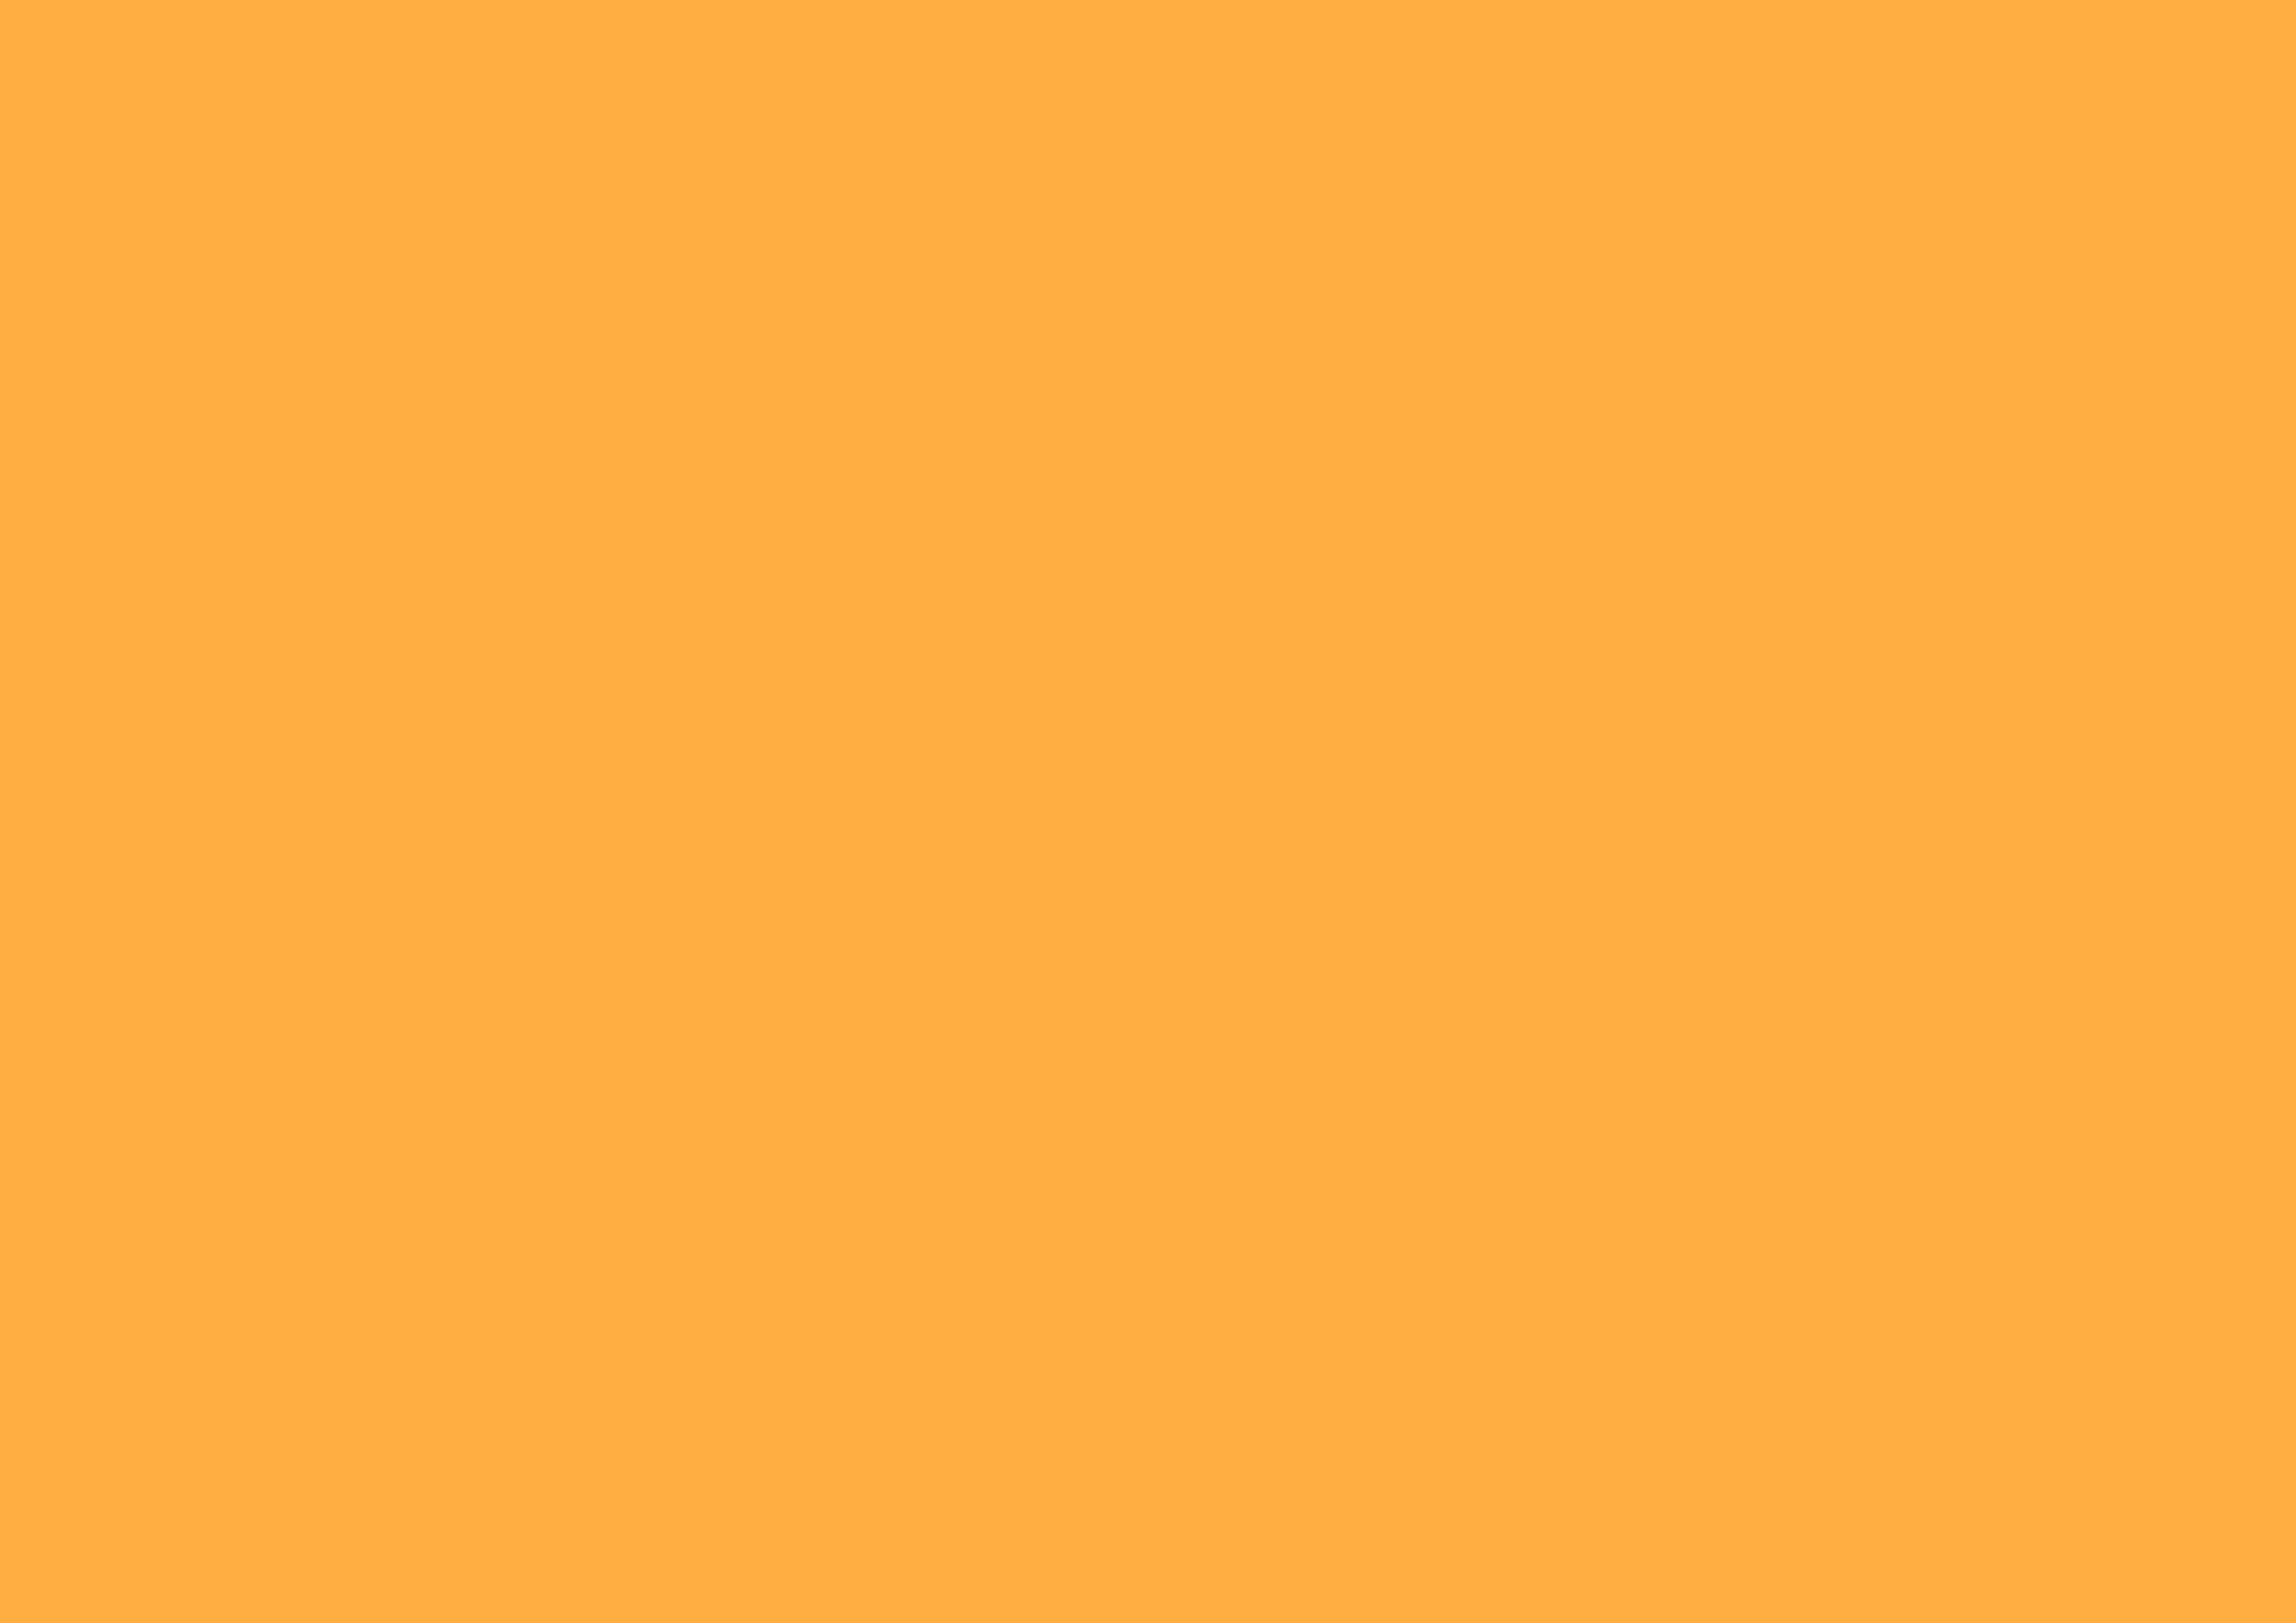 3508x2480 Yellow Orange Solid Color Background